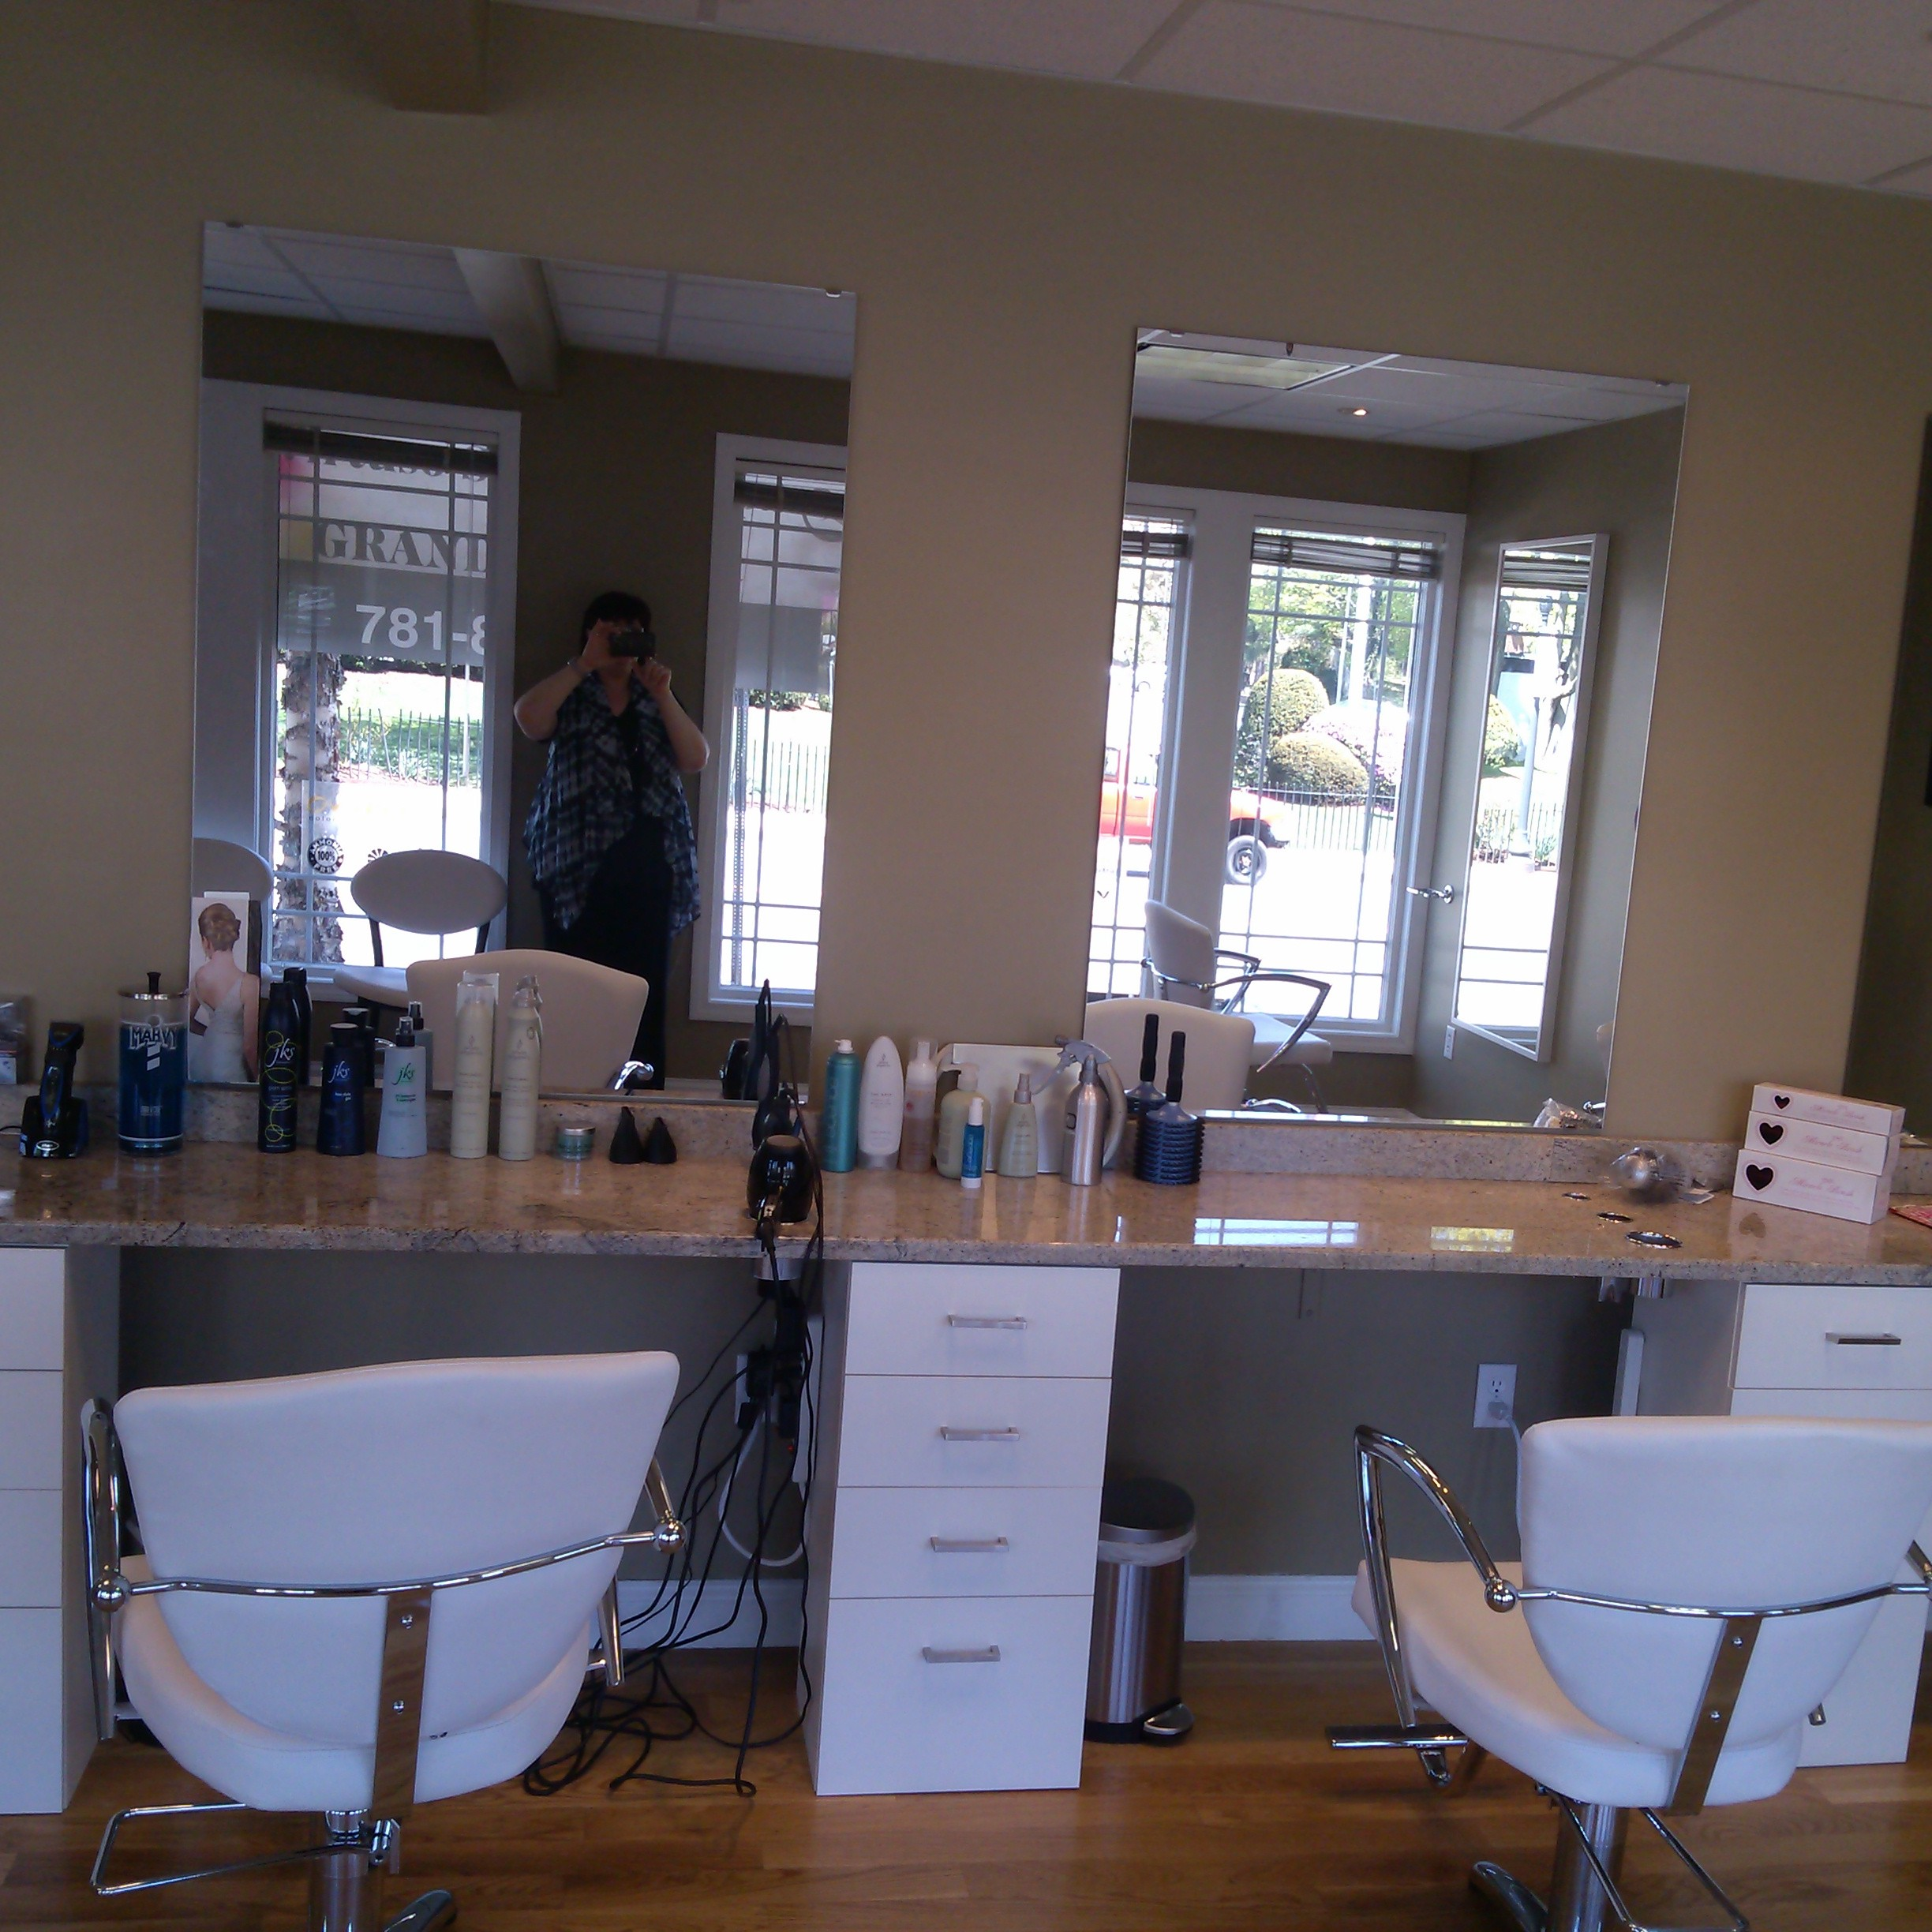 Hairstylist Nail Tech Esthetician Room For Lease Canton MA